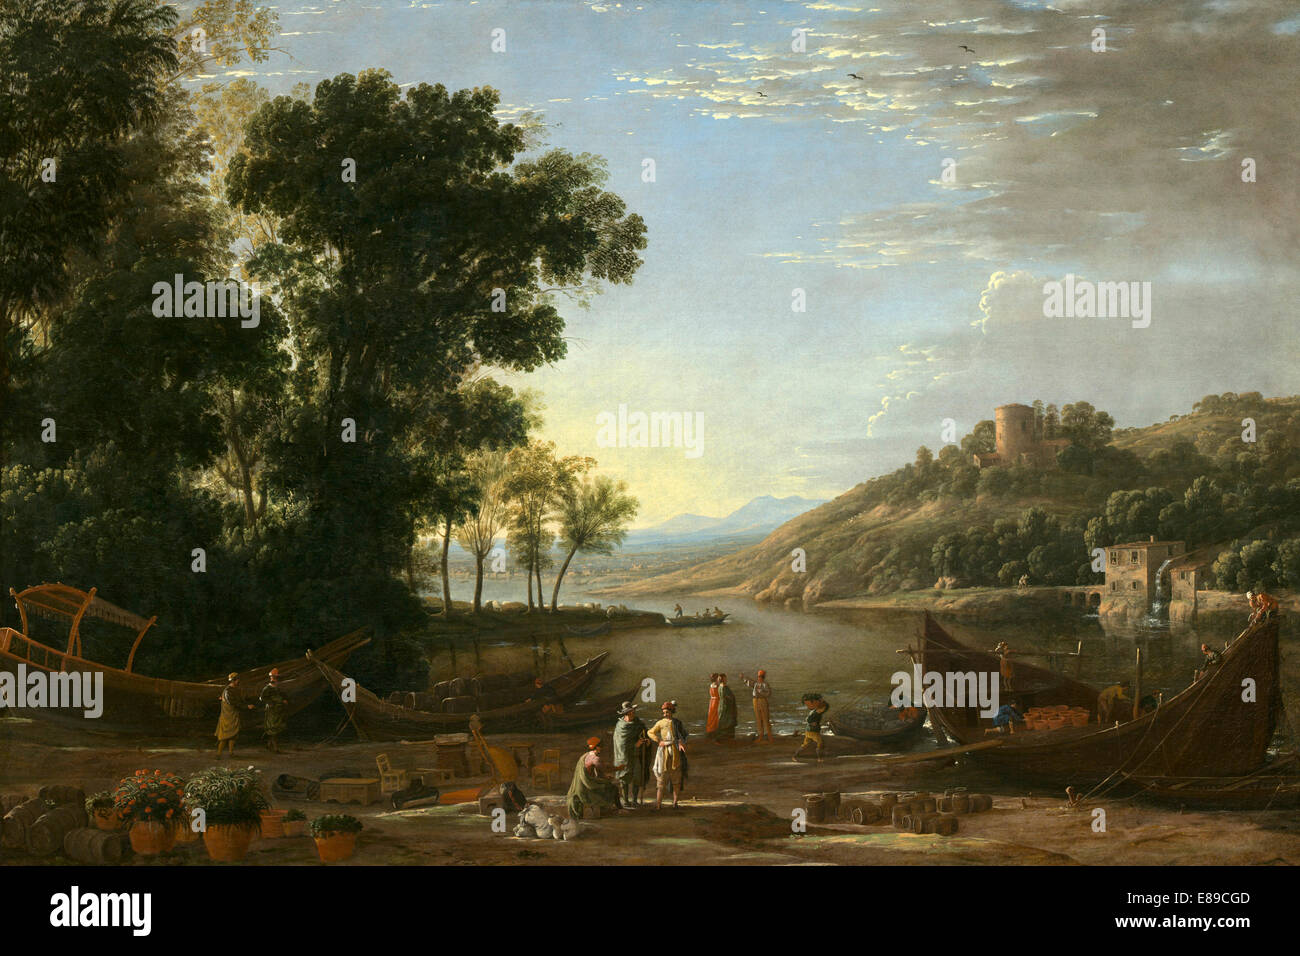 Claude Lorrain (French, 1604/1605 - 1682 ), Landscape with Merchants, c. 1629, oil on canvas - Stock Image